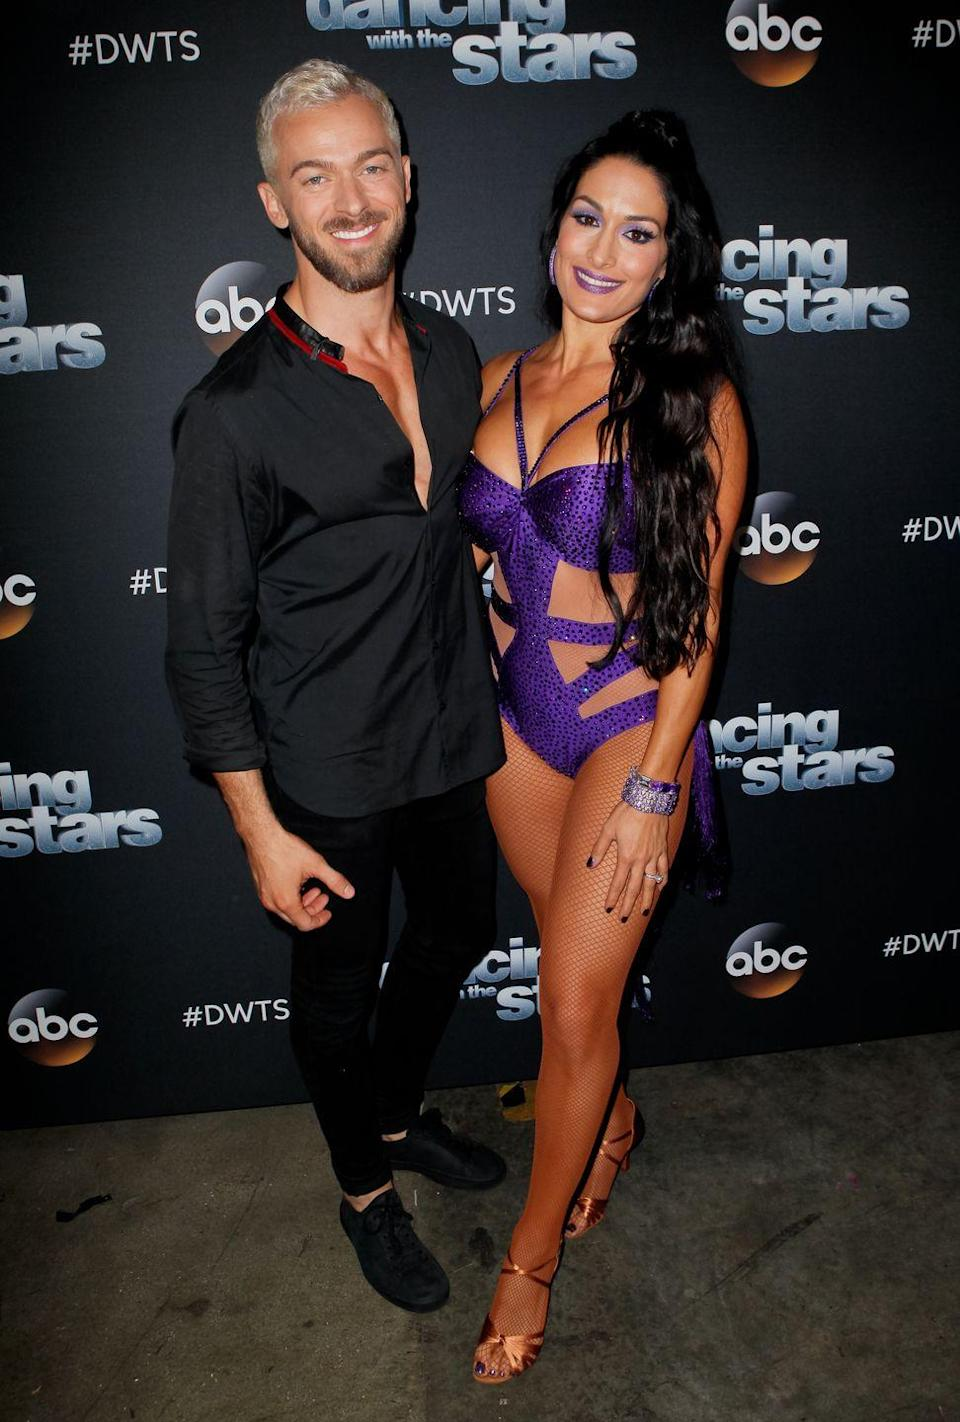 """<p>It isn't every day that a dancer/contestant relationship from <em>Dancing With The Stars</em> works out. Nikki Bella and pro dancer Artem Chigvintsev first met as partners on season 25, when the <em>Total Bellas</em> star was engaged to John Cena. After the show and Nikki's breakup, the pair reunited in 2018, this time romantically. Artem popped the question in November 2019 and <a href=""""https://www.instagram.com/p/CDZoxn7lGa3/?"""" rel=""""nofollow noopener"""" target=""""_blank"""" data-ylk=""""slk:the couple welcomed their son"""" class=""""link rapid-noclick-resp"""">the couple welcomed their son</a>, Matteo, on July 31, 2020.</p>"""